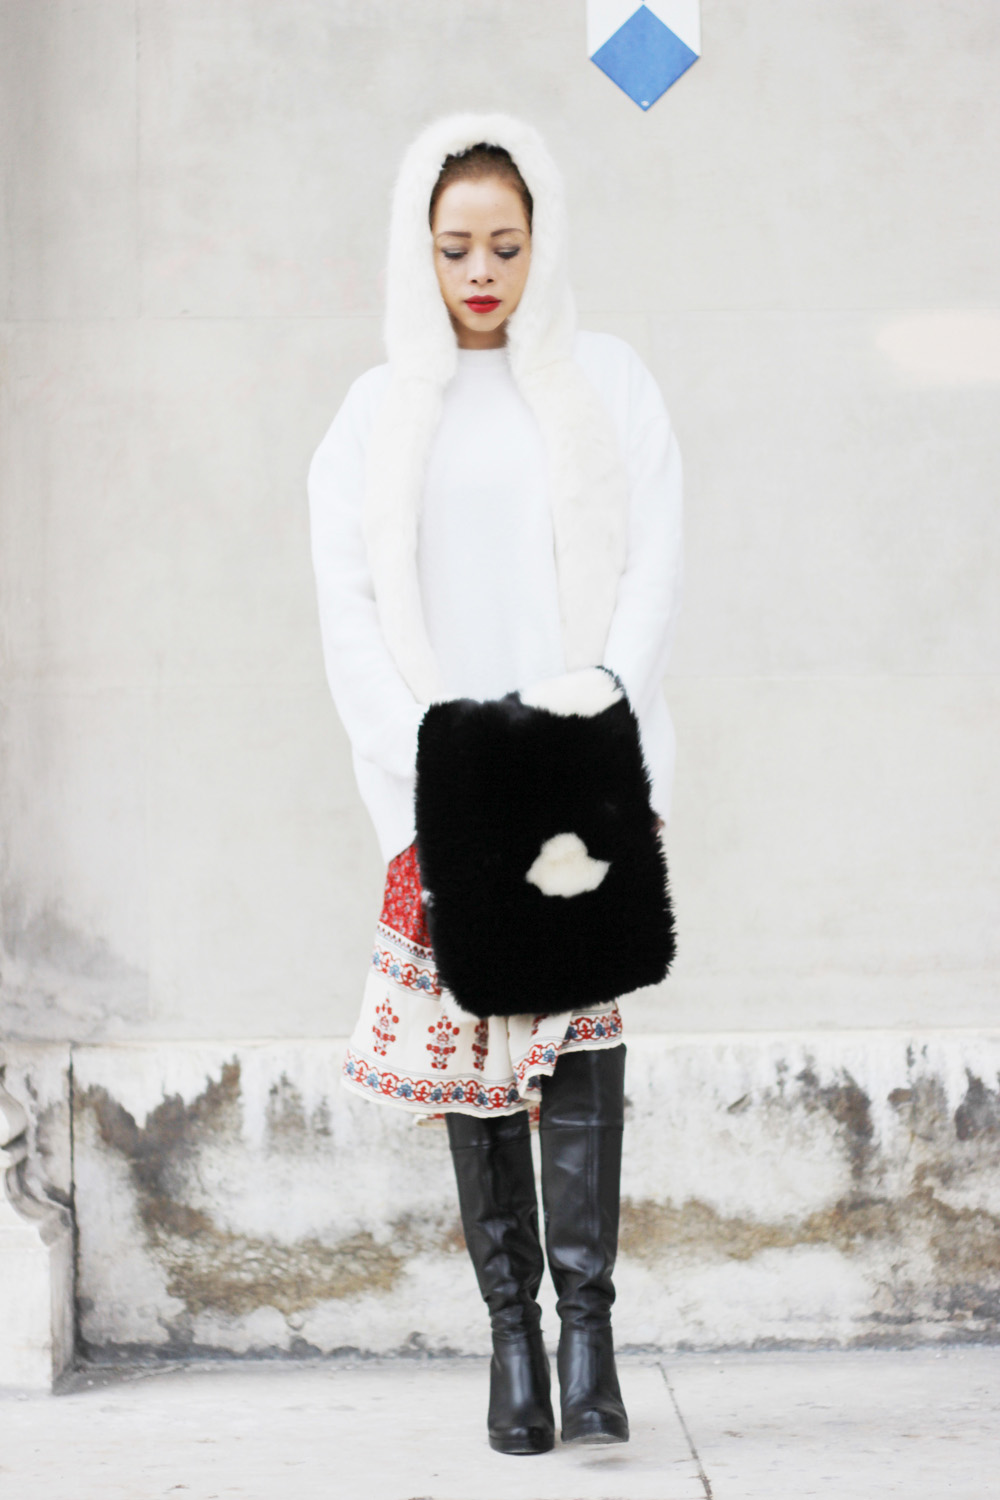 fatimayarie-white-fauxfur-cap-sweater-reddress-leatherboots-img_6945